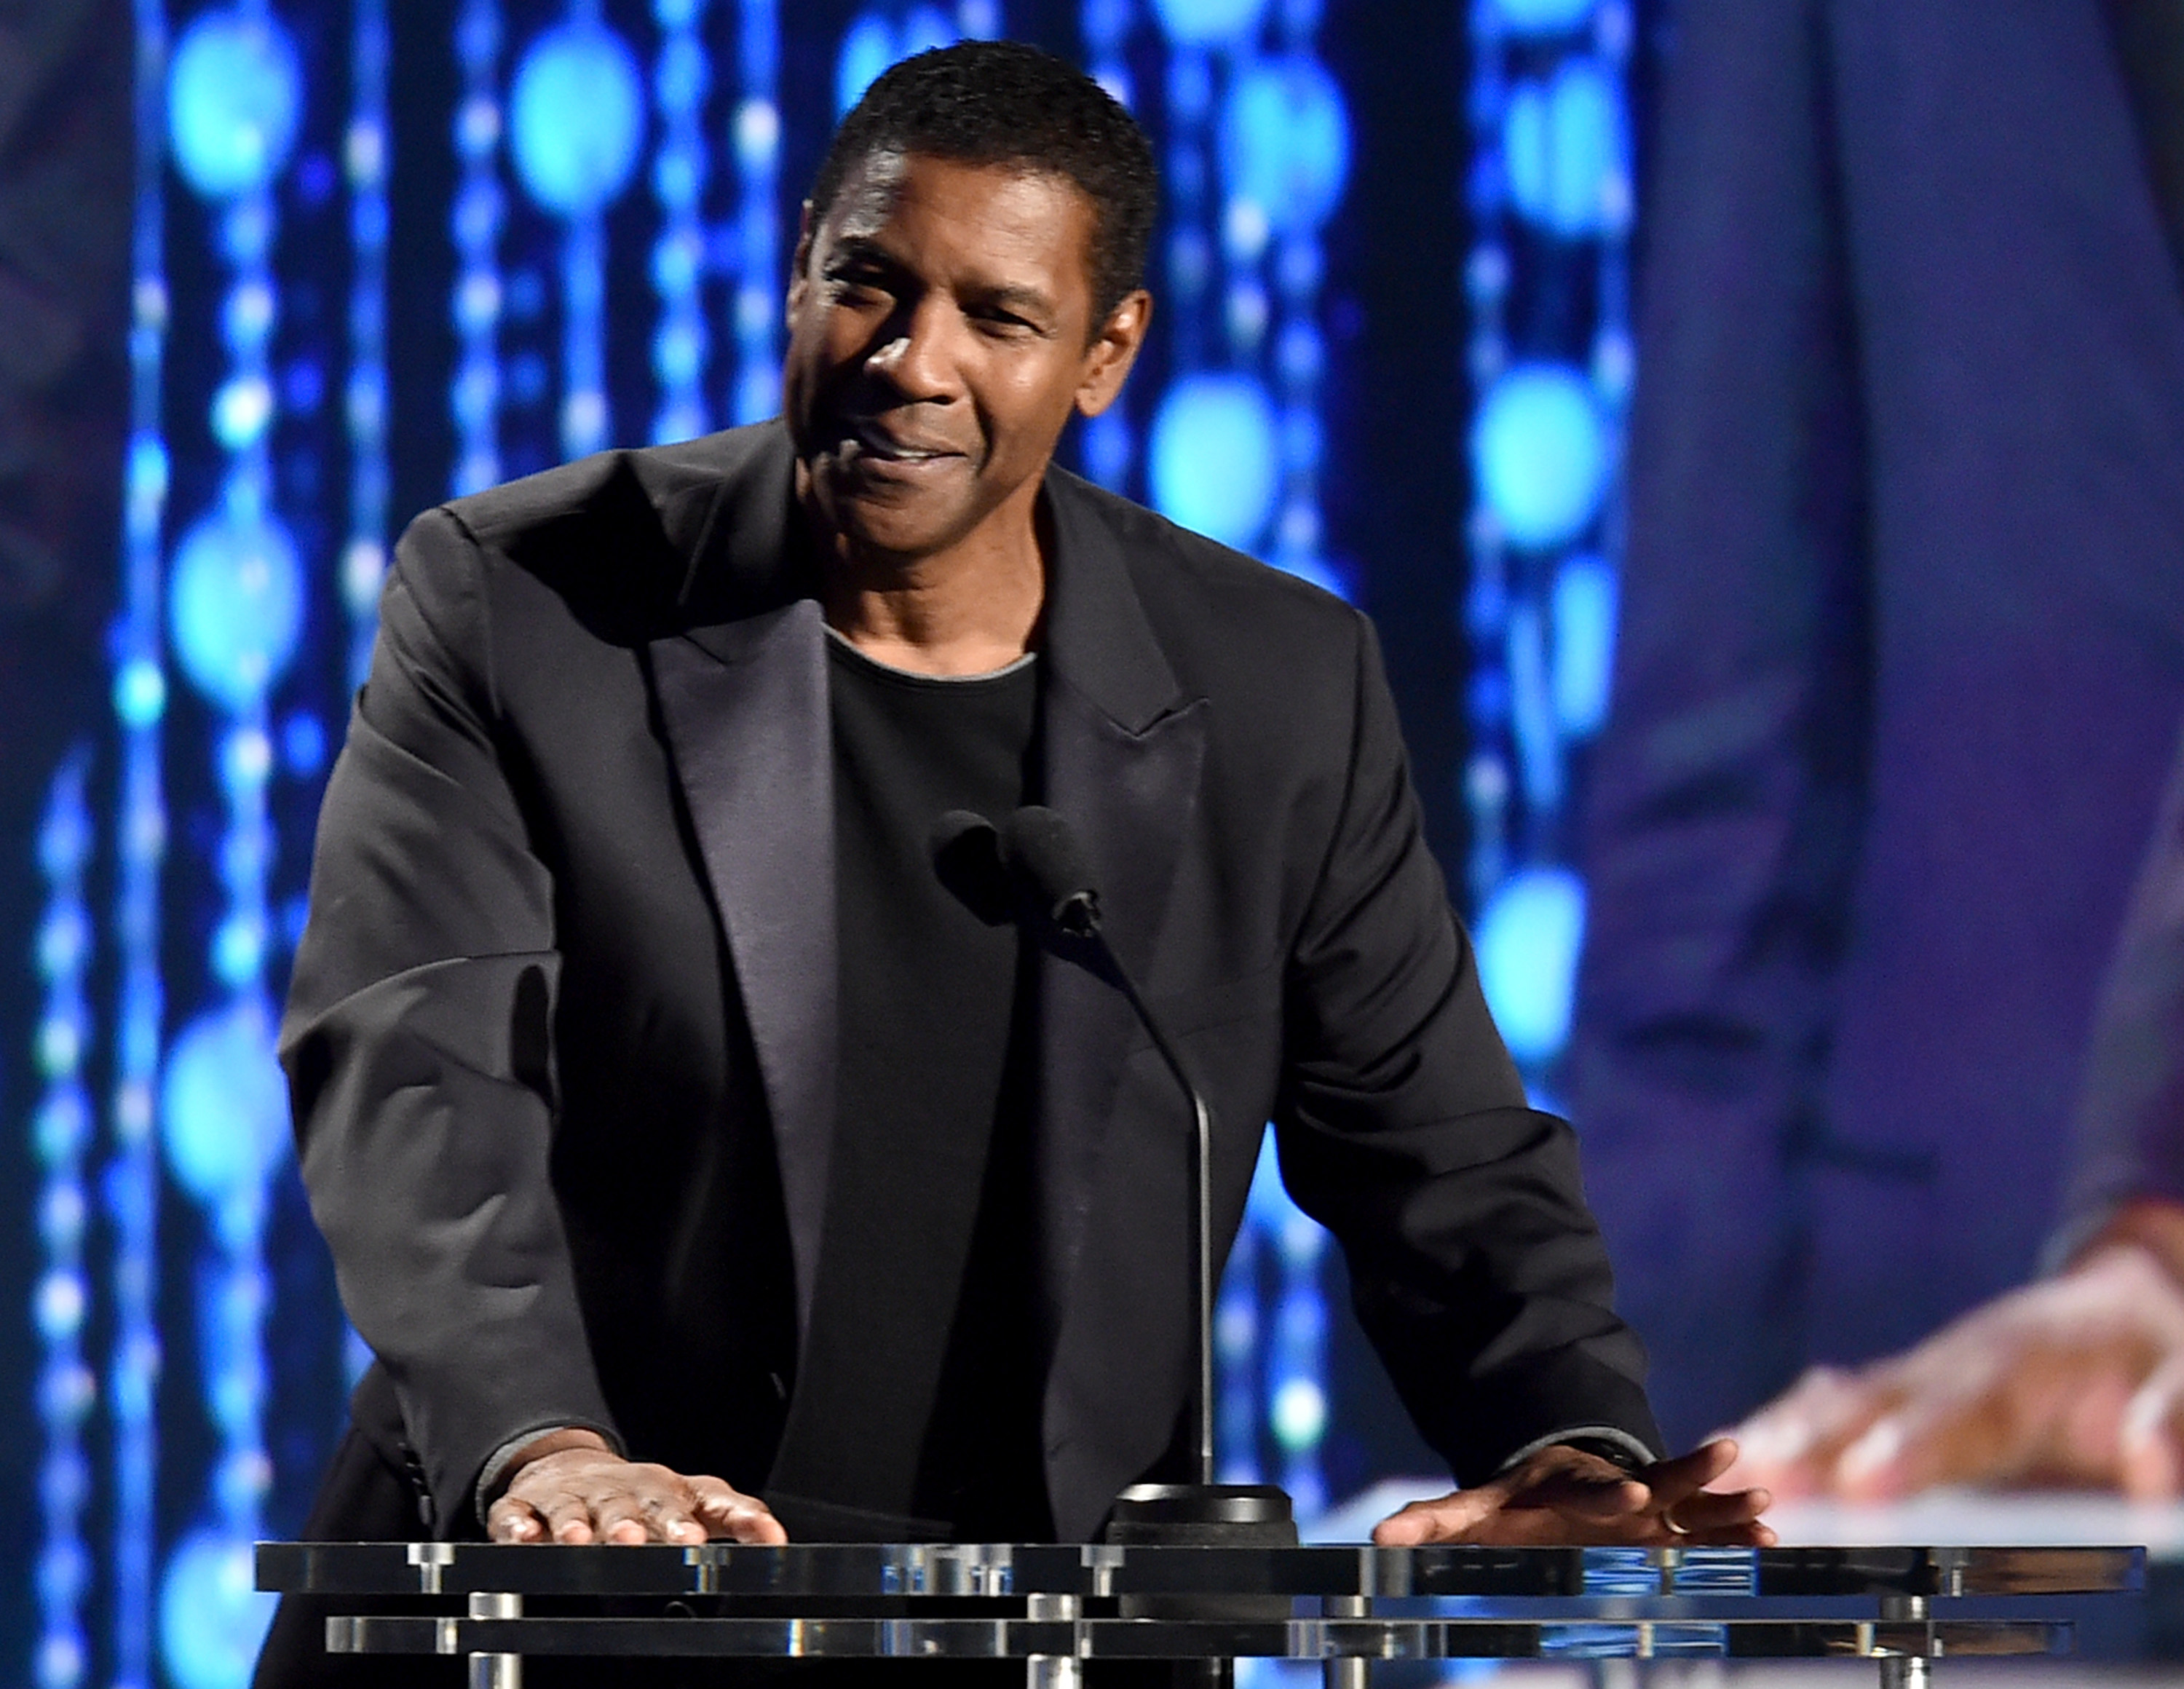 Denzel Washington speaks onstage during the Academy of Motion Picture Arts and Sciences' 7th annual Governors Awards at The Ray Dolby Ballroom at Hollywood & Highland Center on November 14, 2015 in Hollywood, California. (Getty Images)